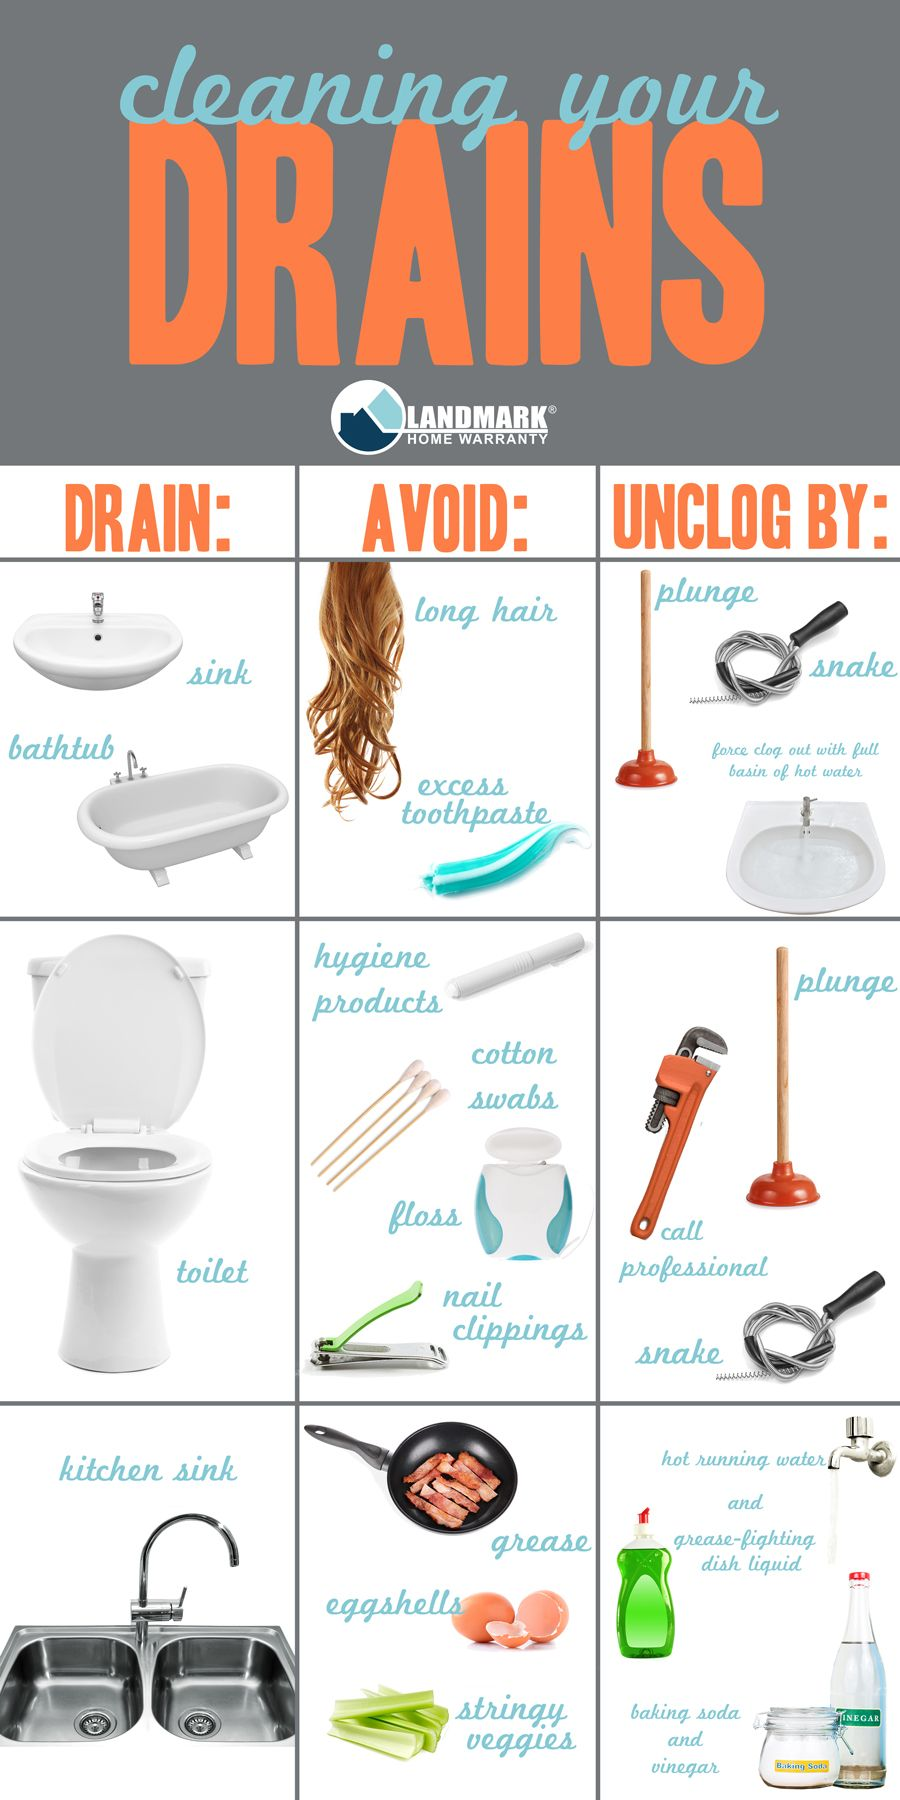 Cleaning Your Drains Drain cleaner, Drains, Diy plumbing